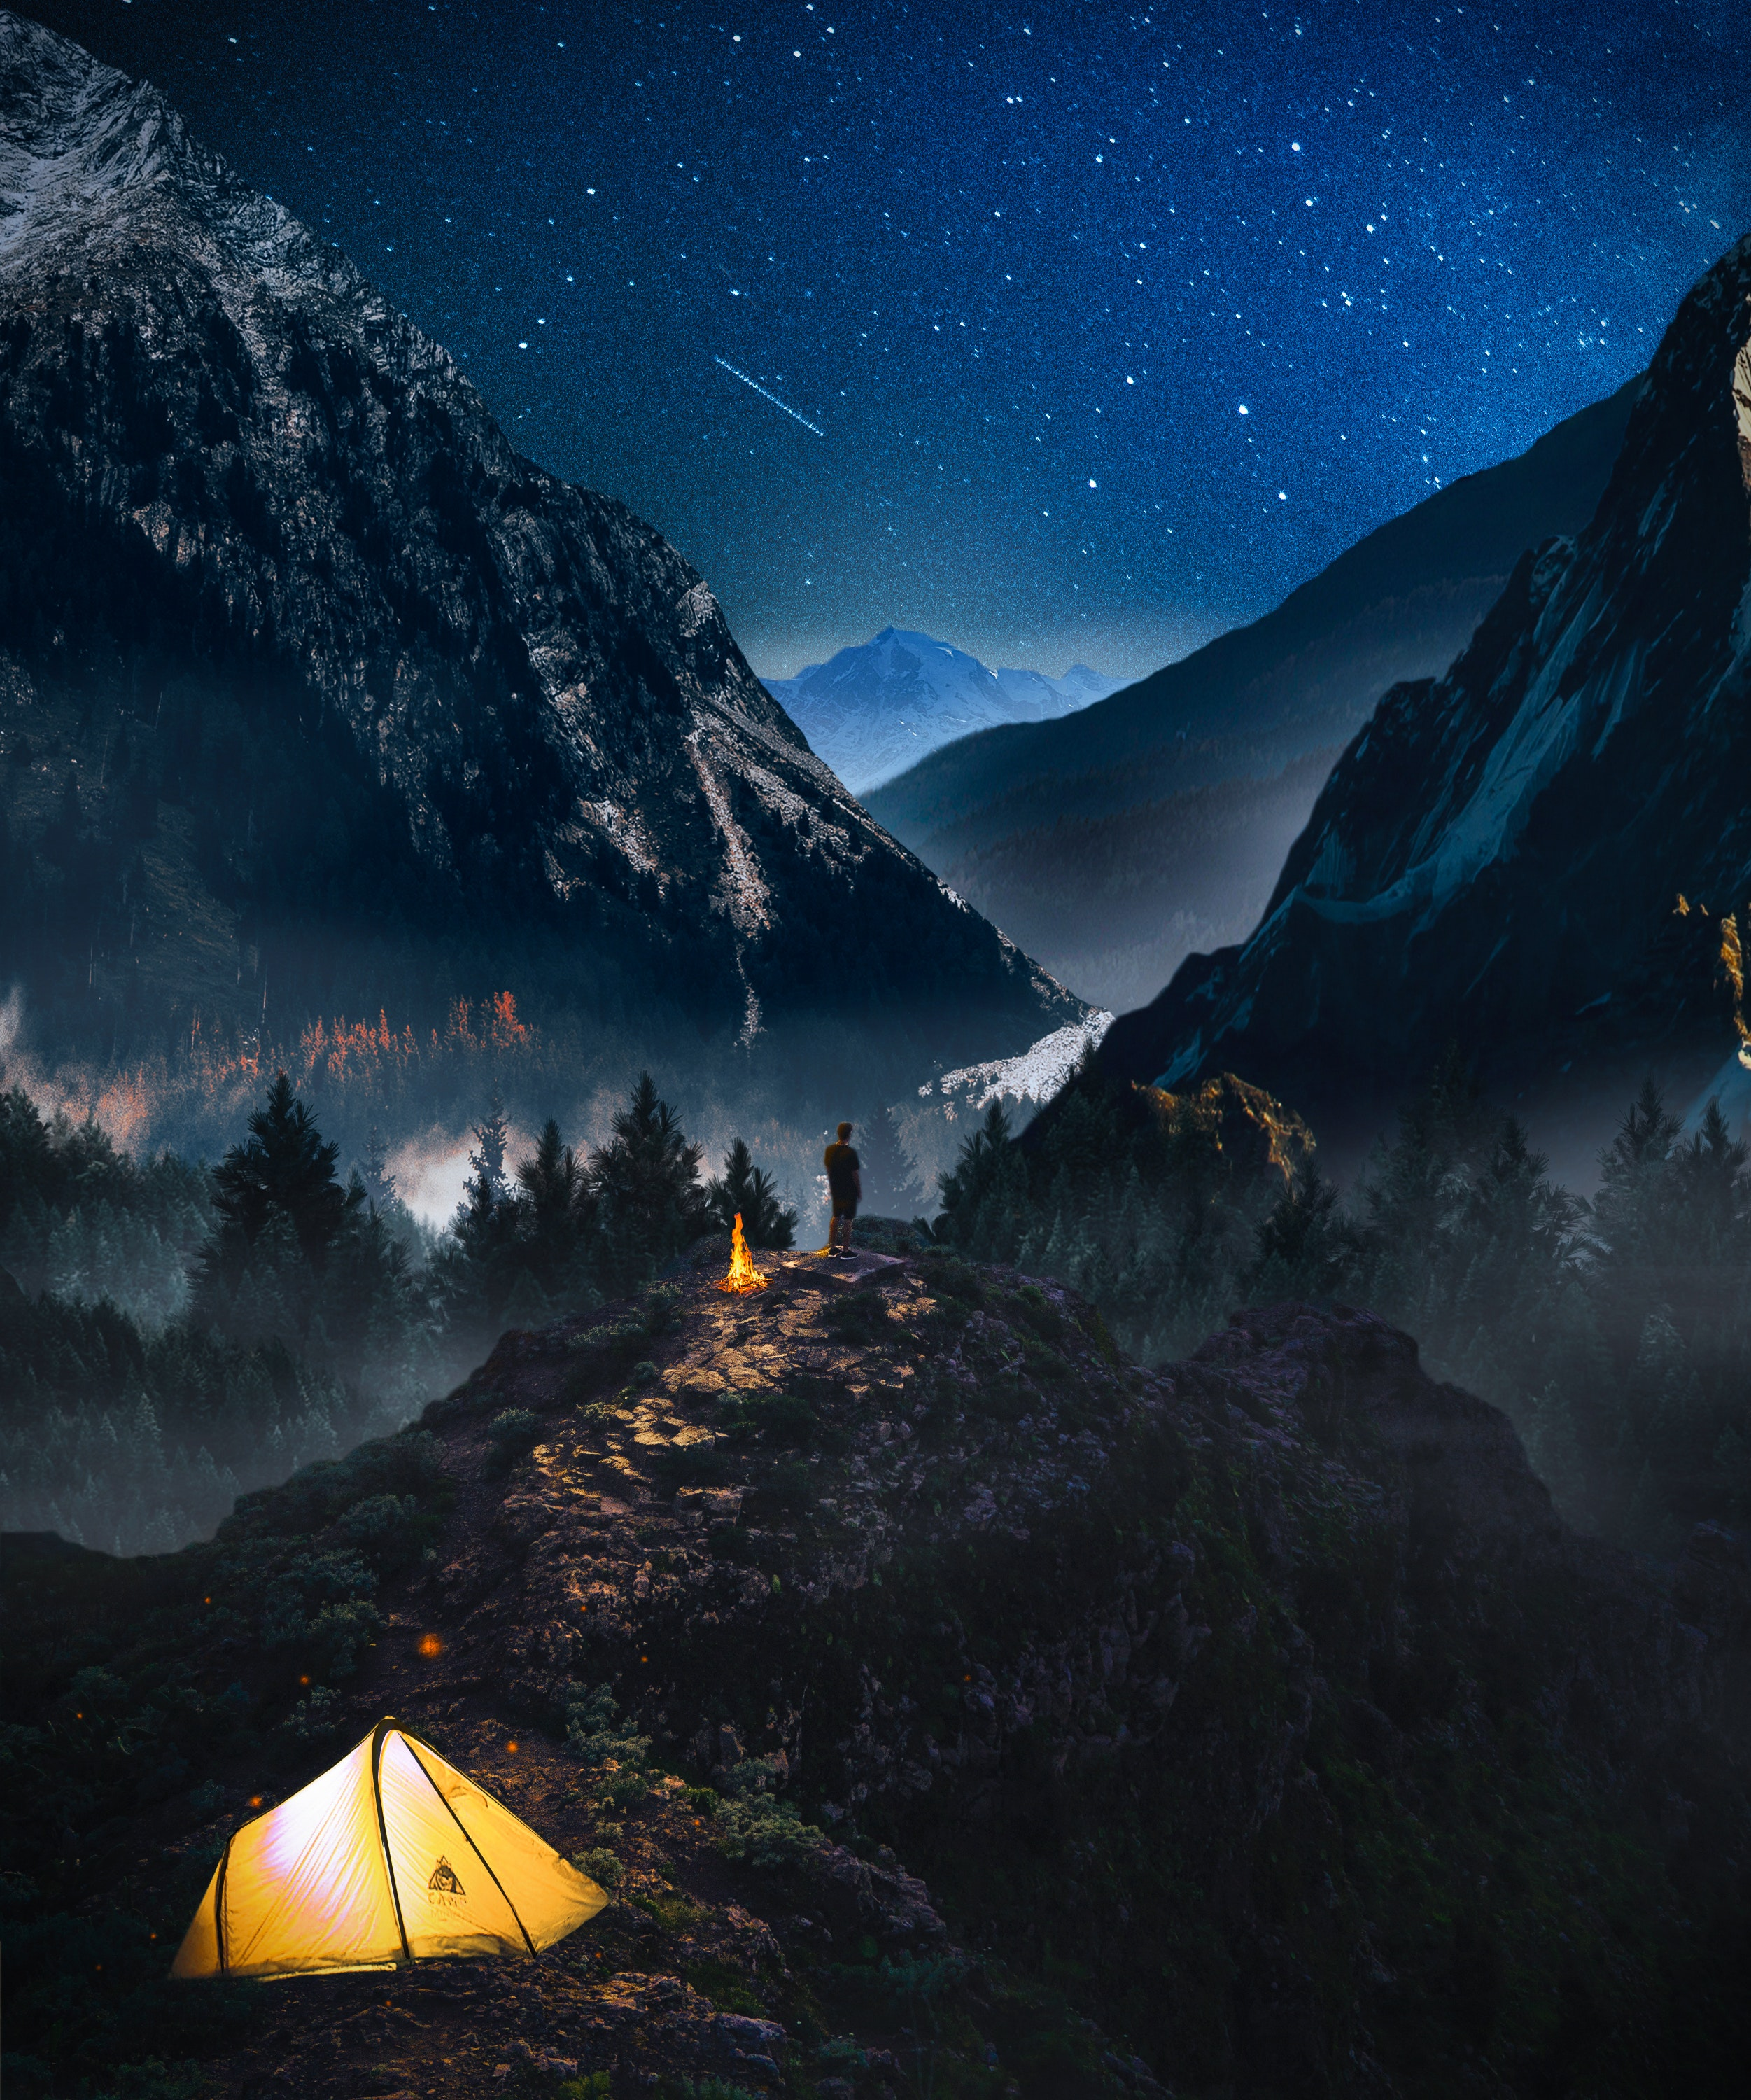 111038 download wallpaper Loneliness, Nature, Mountains, Starry Sky, Photoshop, Camping, Campsite screensavers and pictures for free